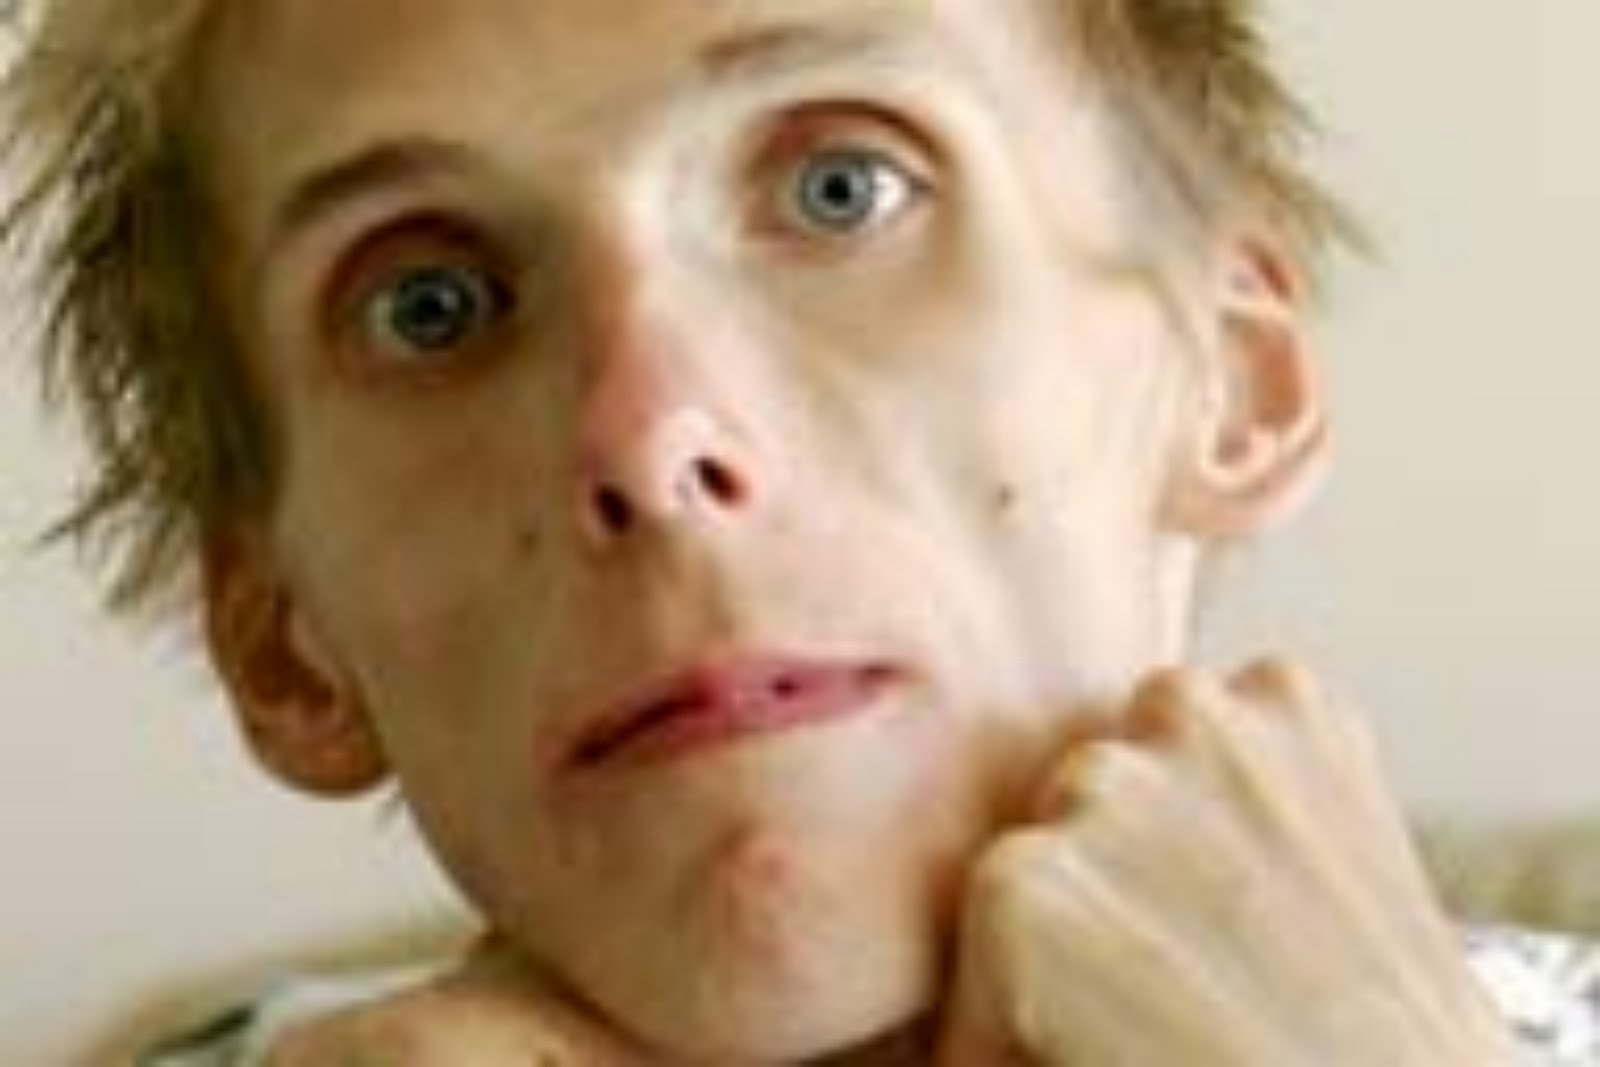 anorexic man face - photo #3